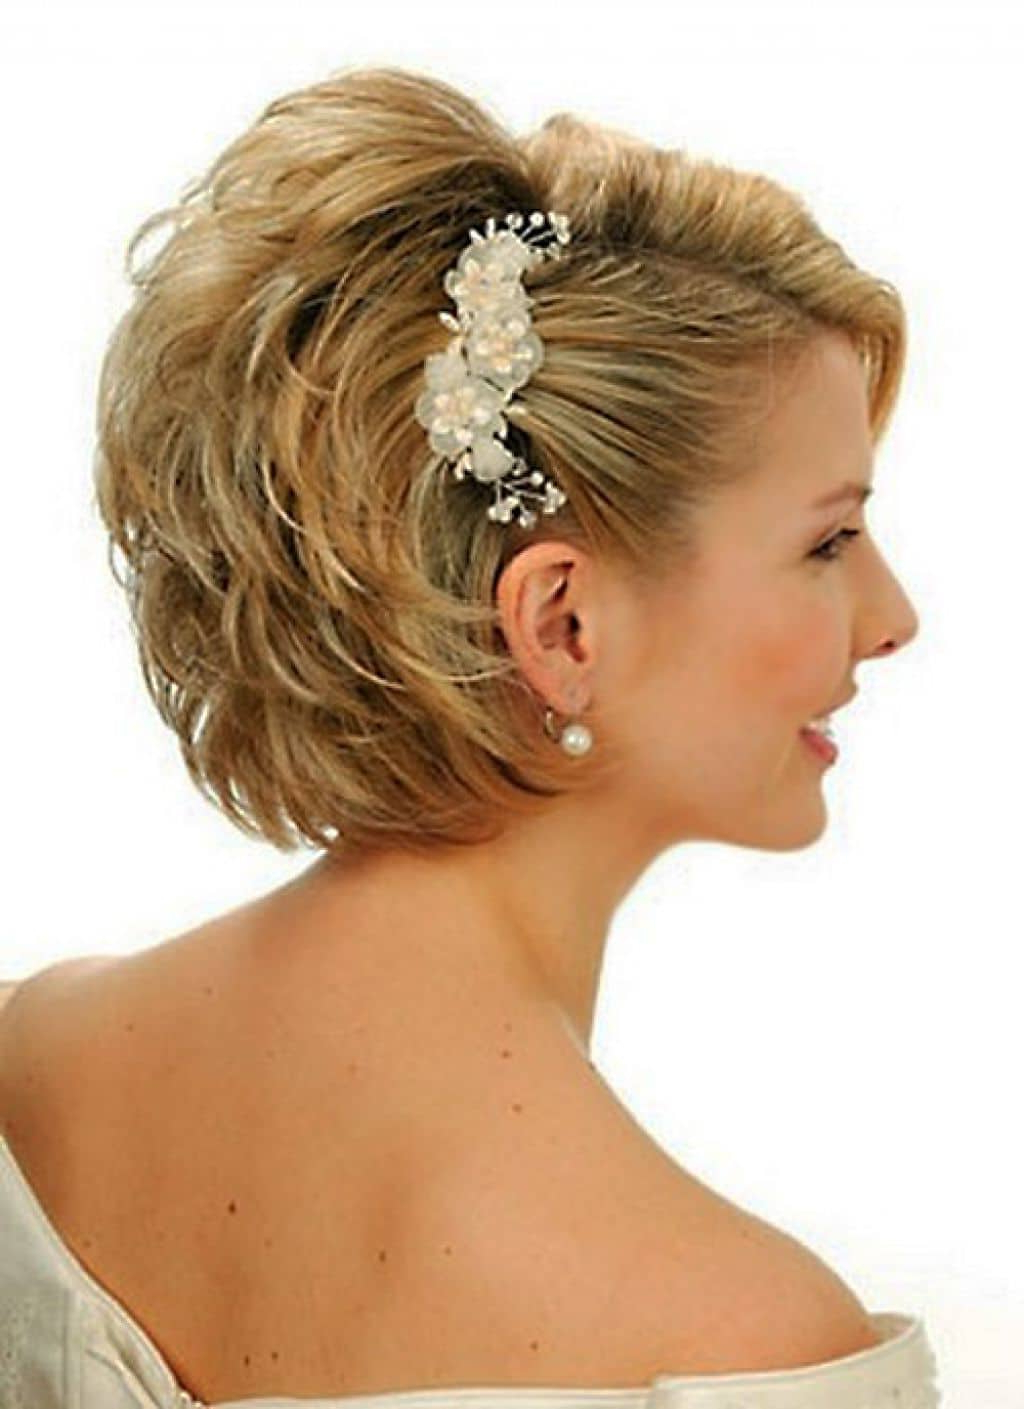 20 Stunning Wedding Hair Updos To Inspire Every Bride – Hairstylevill For Most Popular Swirled Wedding Updos With Embellishment (Gallery 19 of 20)